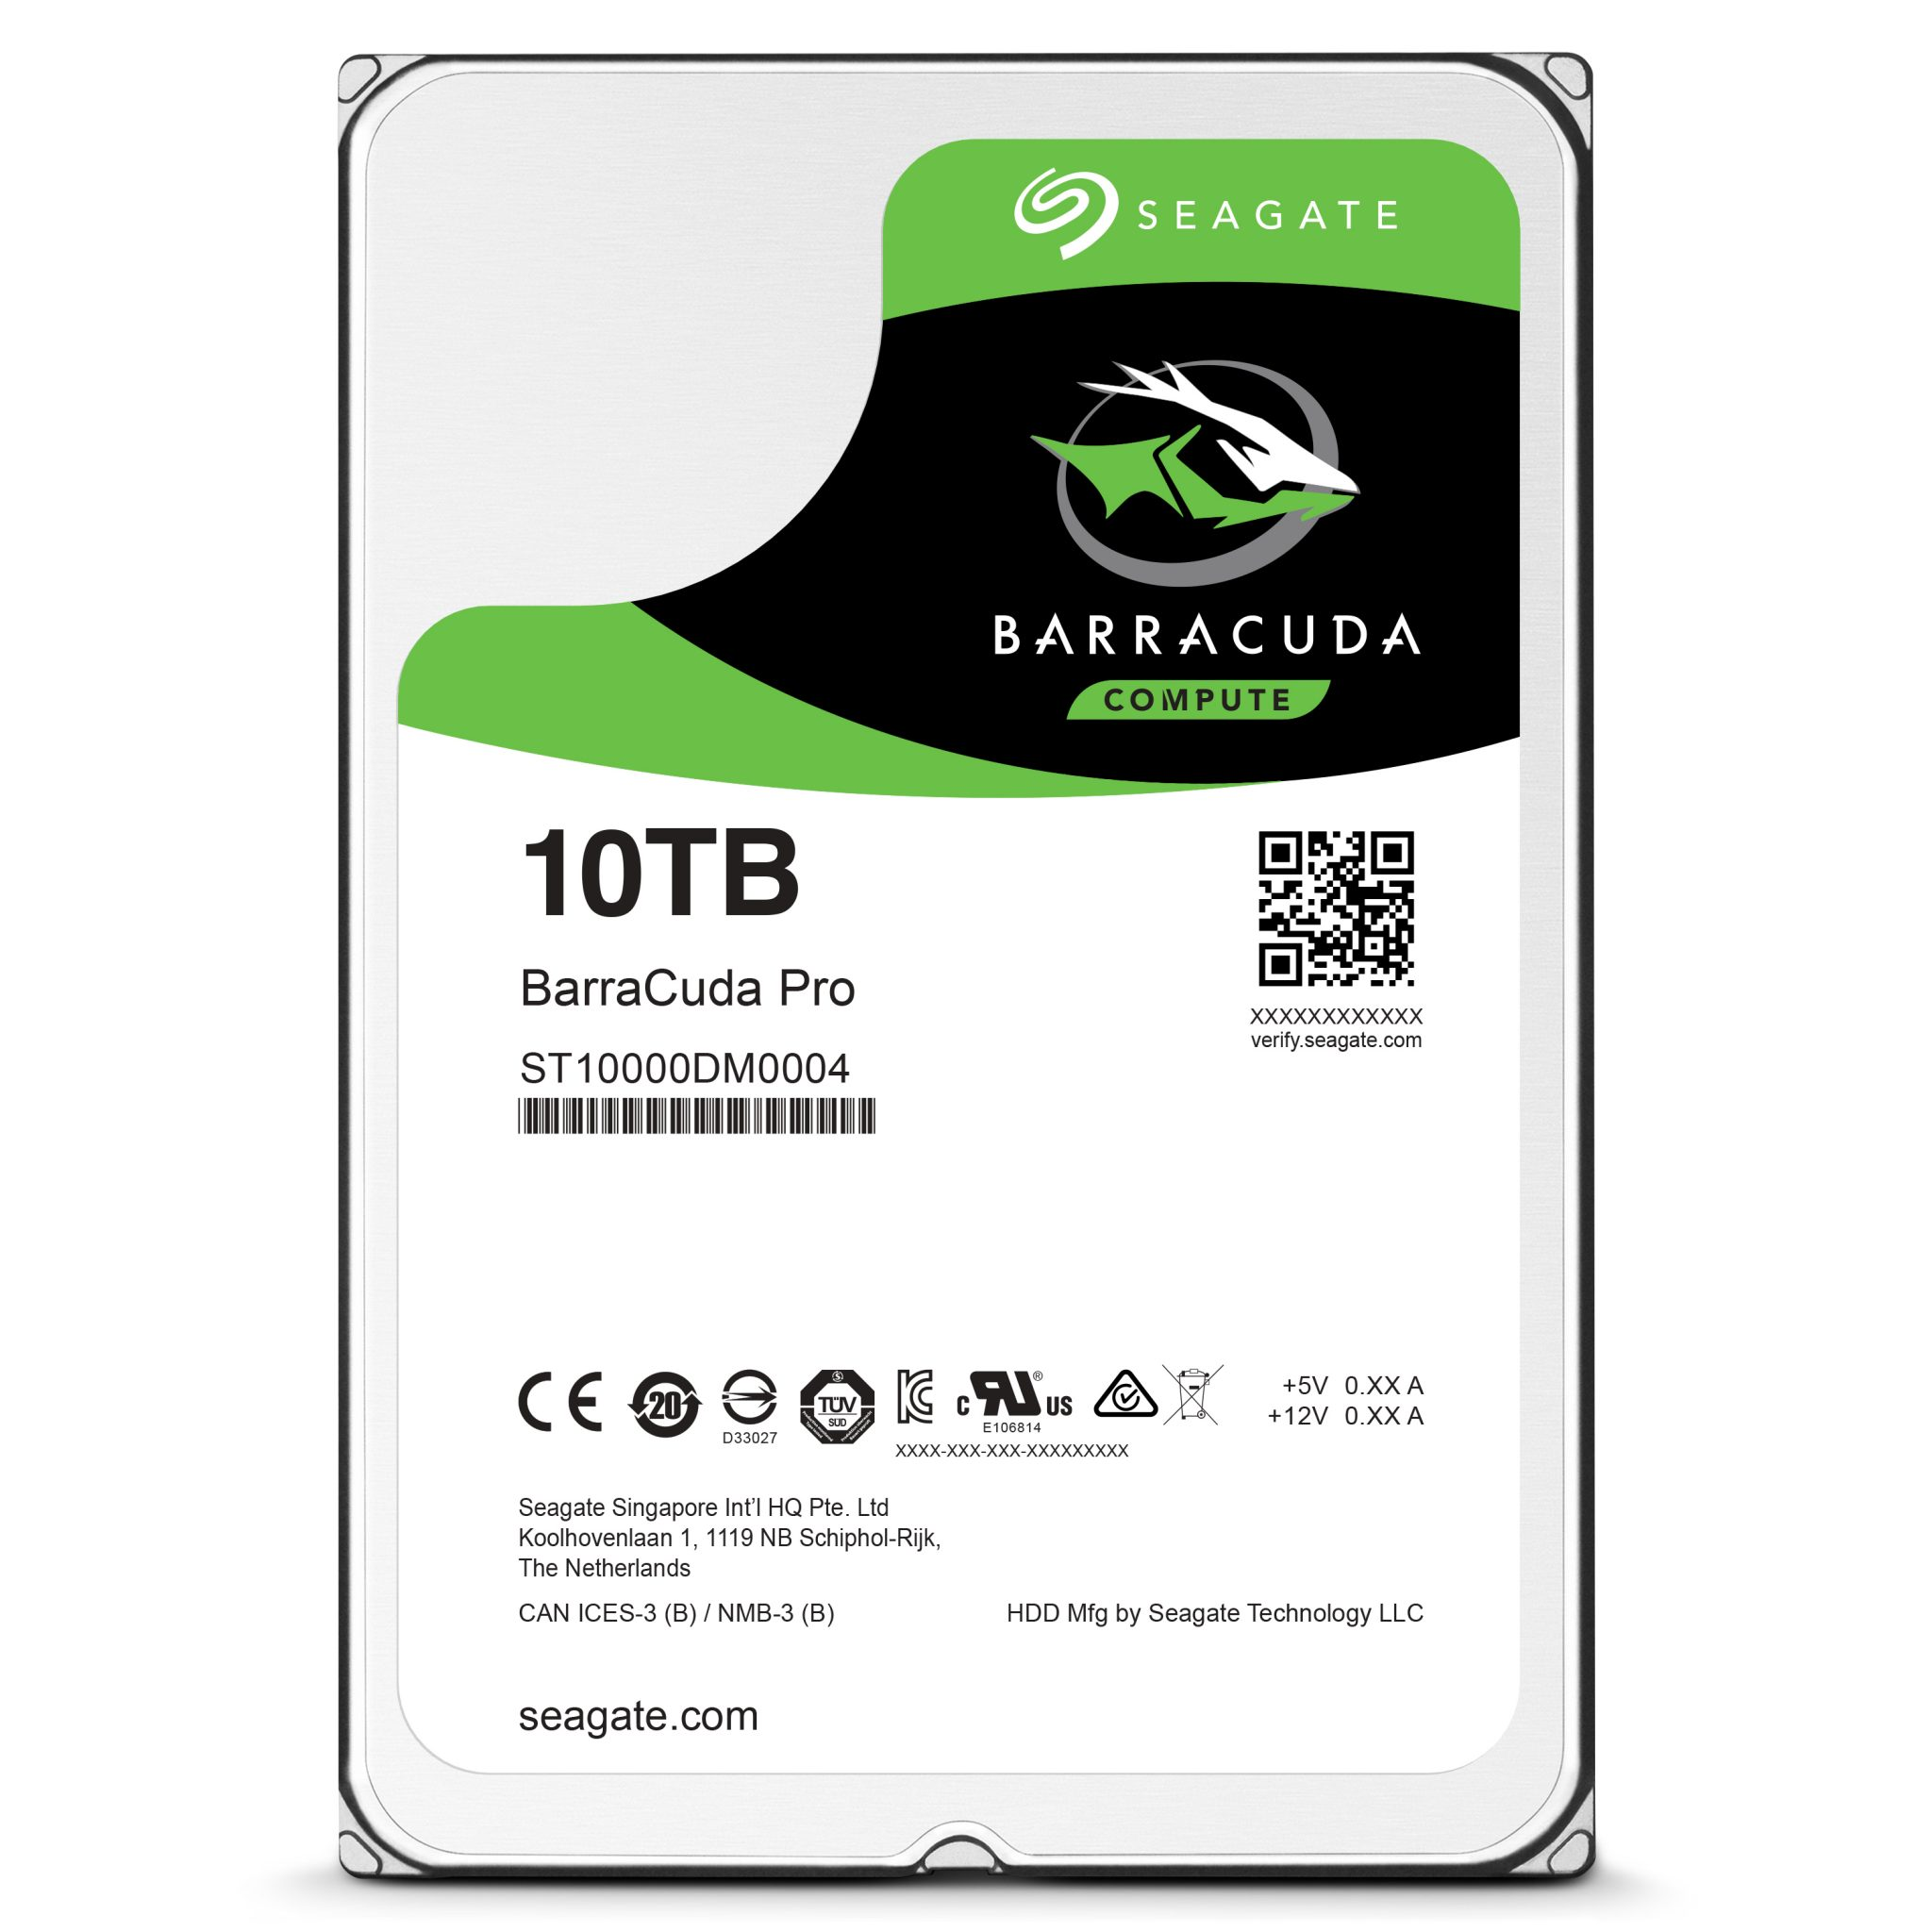 Seagate has made the world's first consumer-based 10TB for you